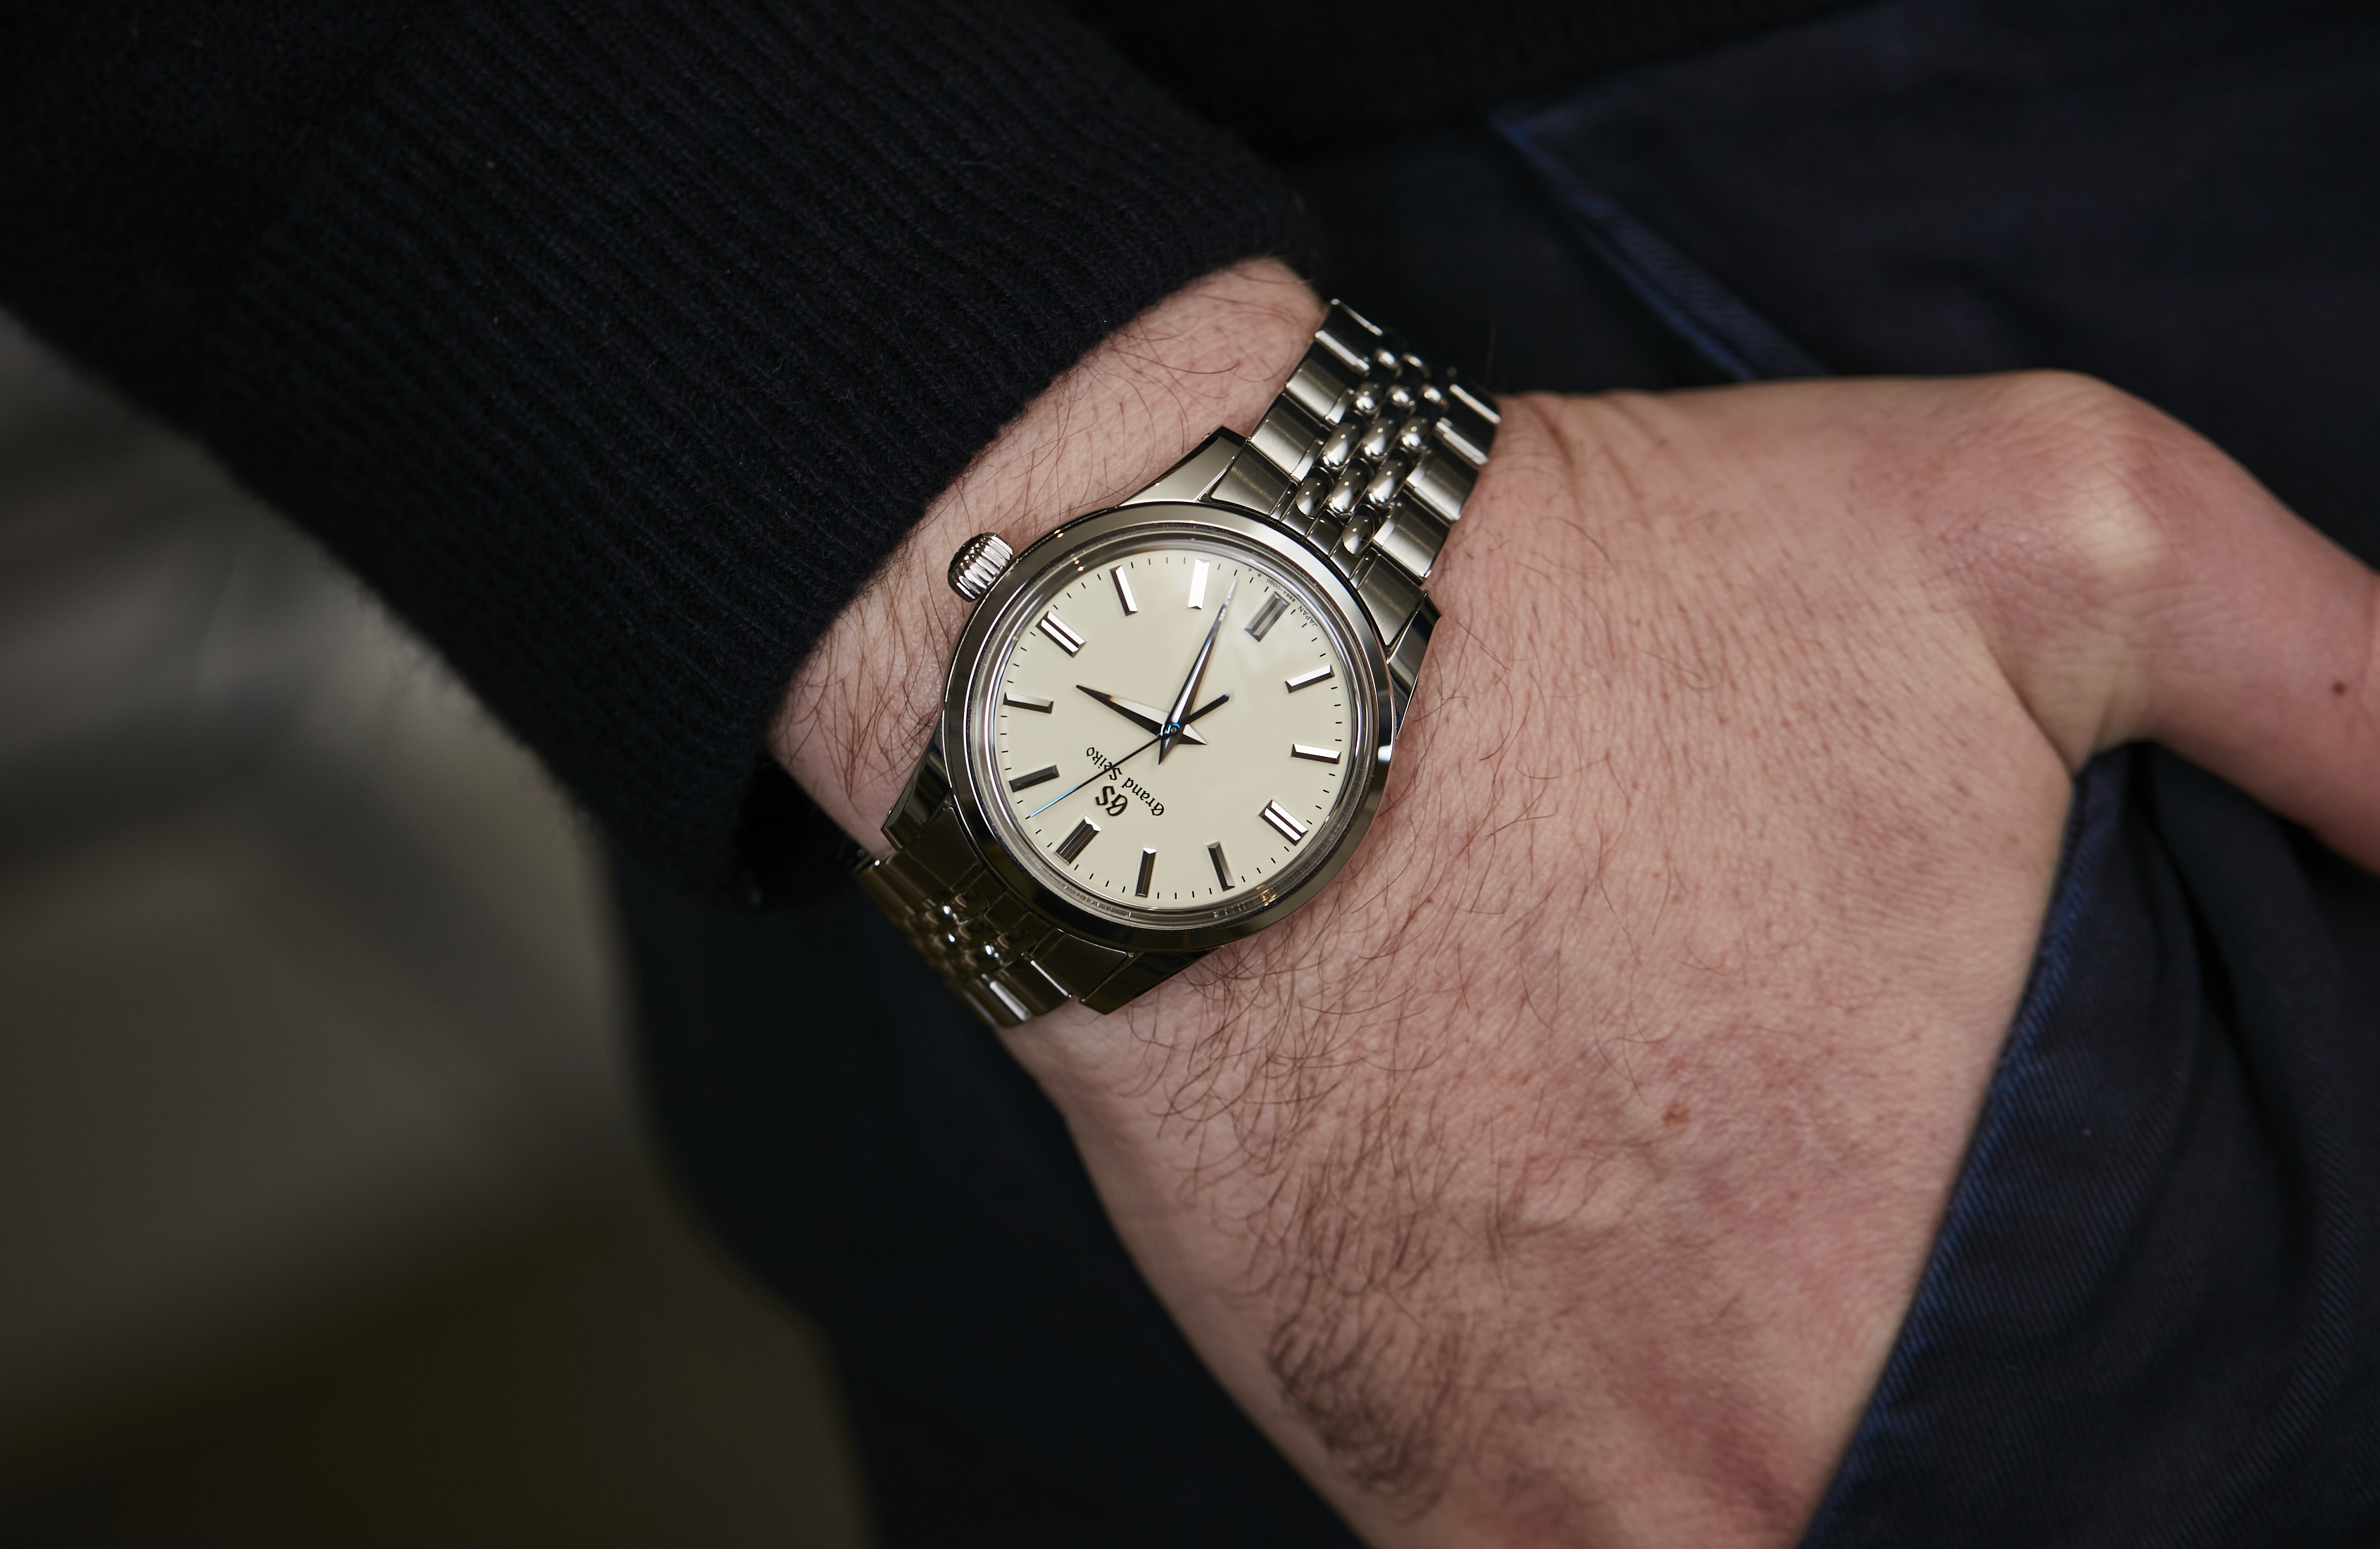 wear watches during COVID